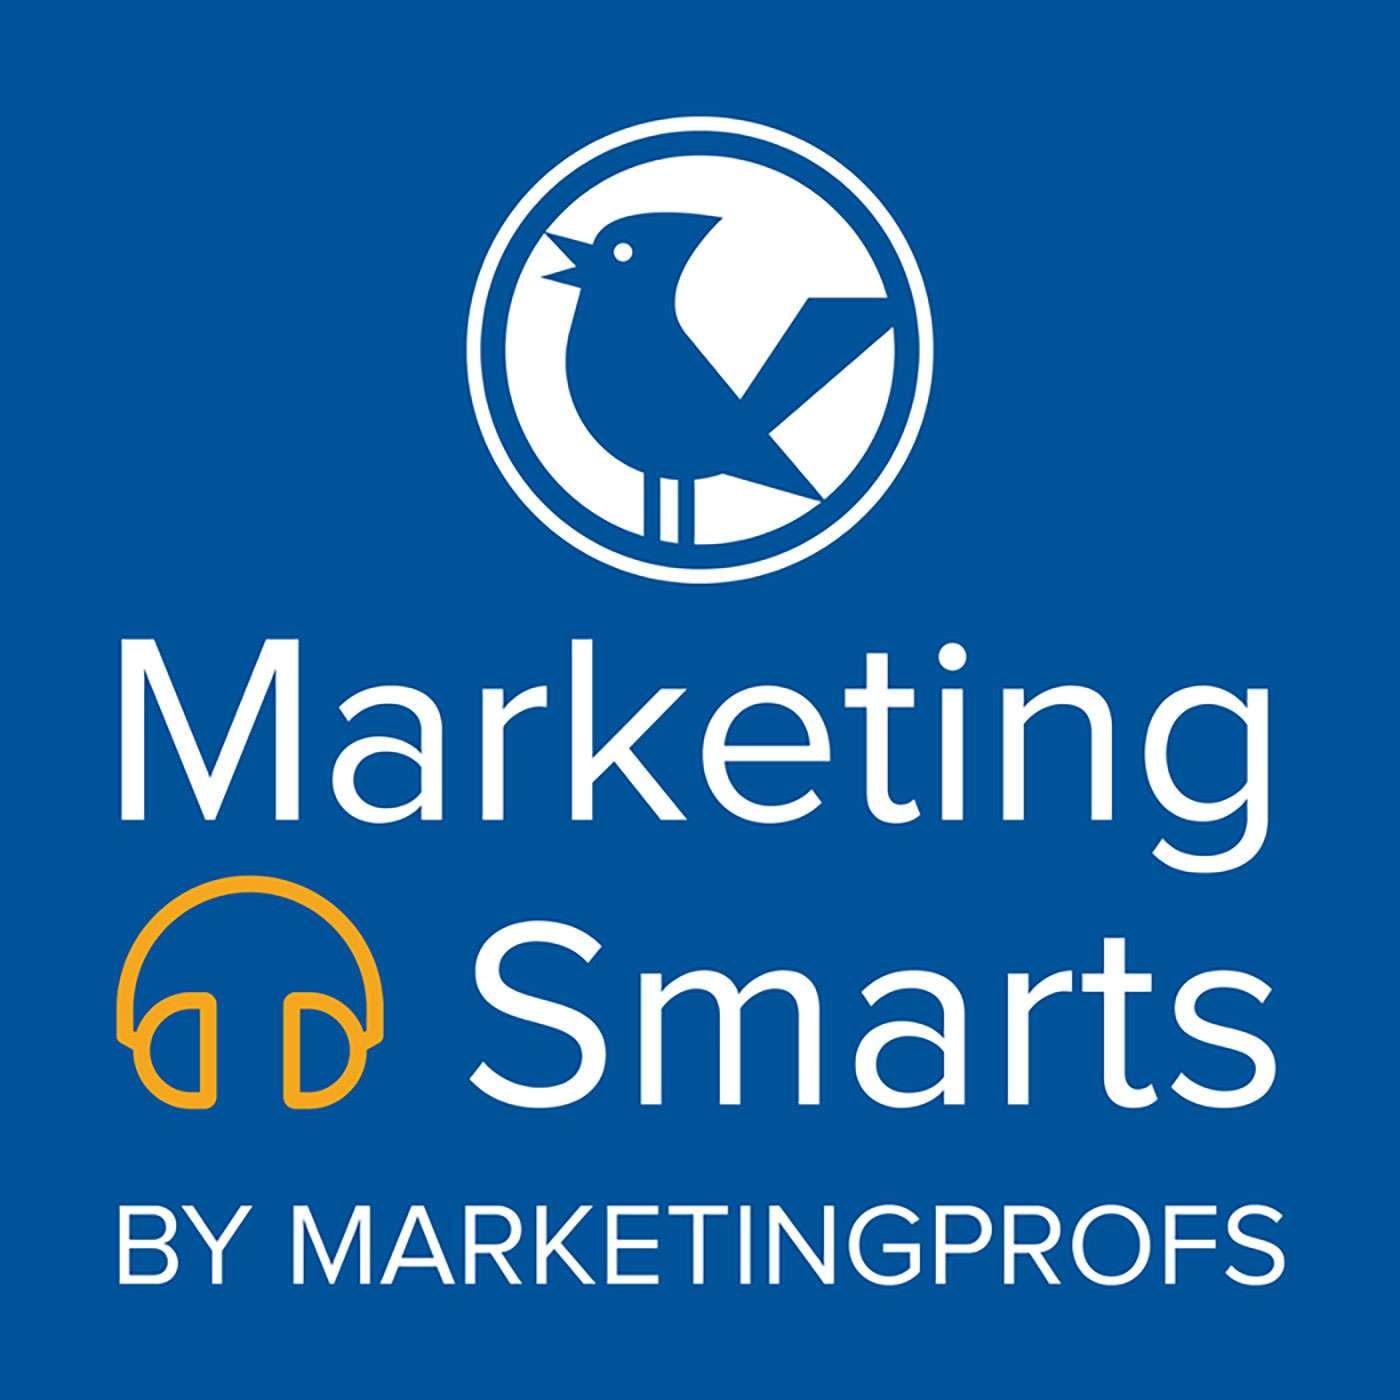 The Power of One (Or How to Effect Change): Keith Jennings on Marketing Smarts [Podcast]